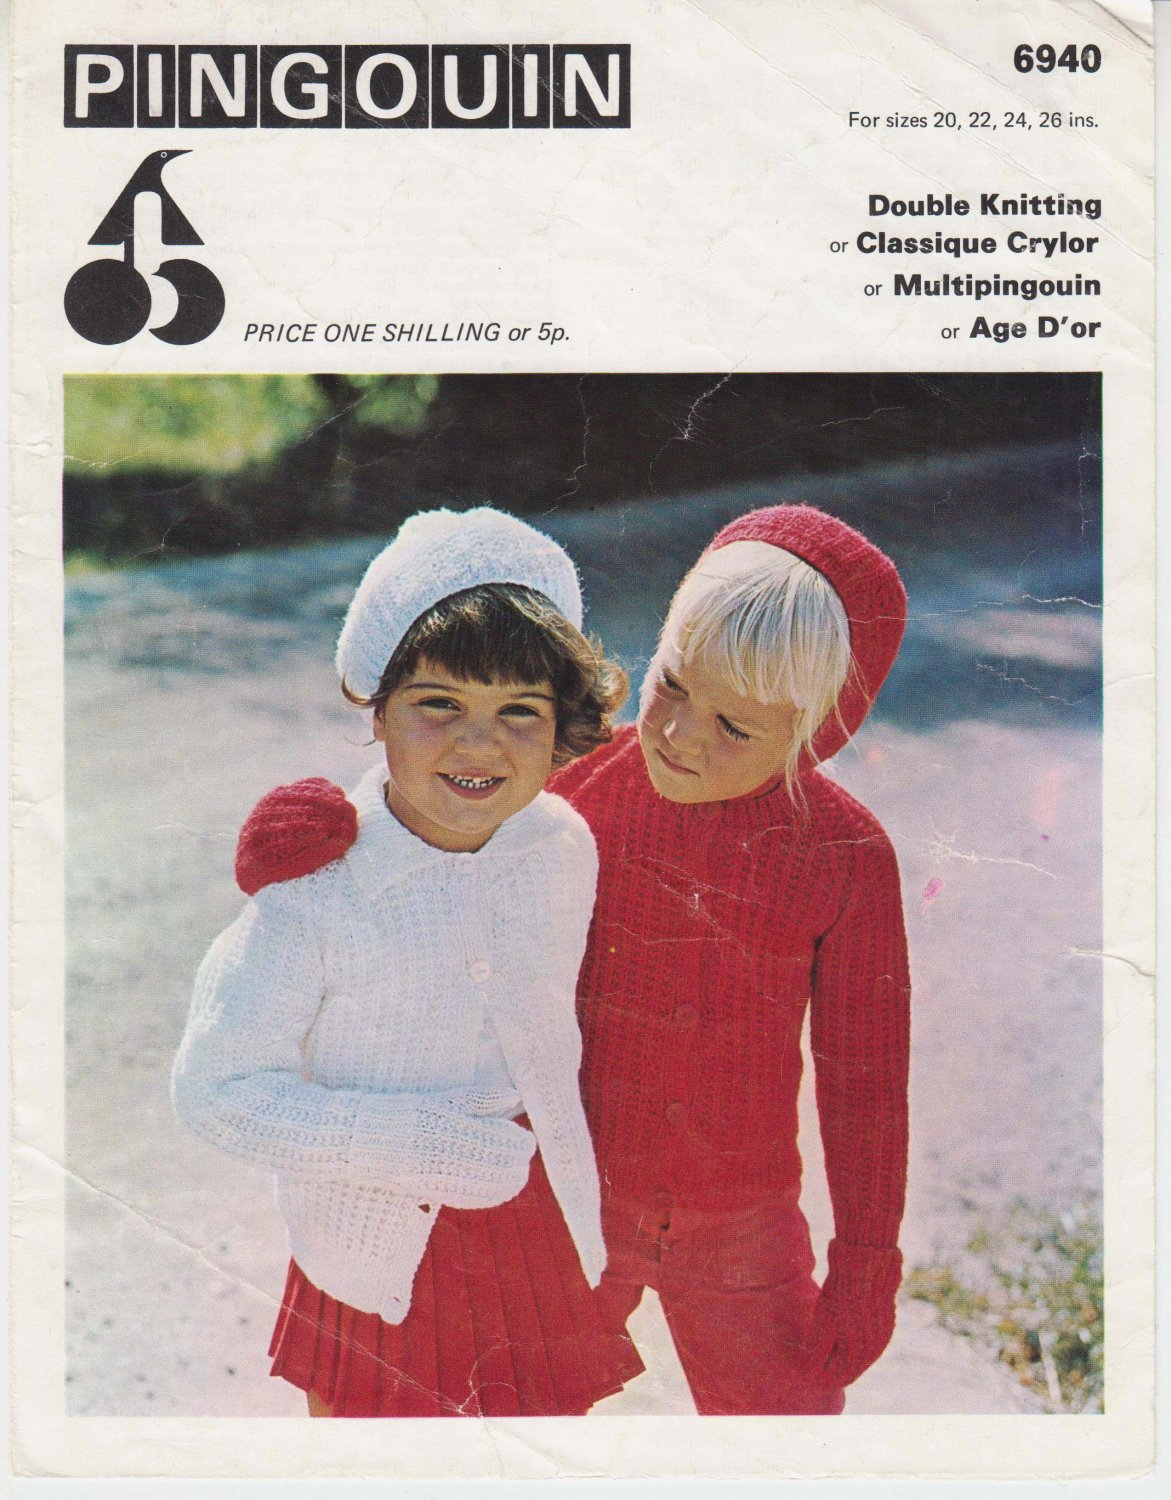 Pingouin knitting Pattern #6940 Child's Raglan Sweater, Mitts, Helmet and Beret